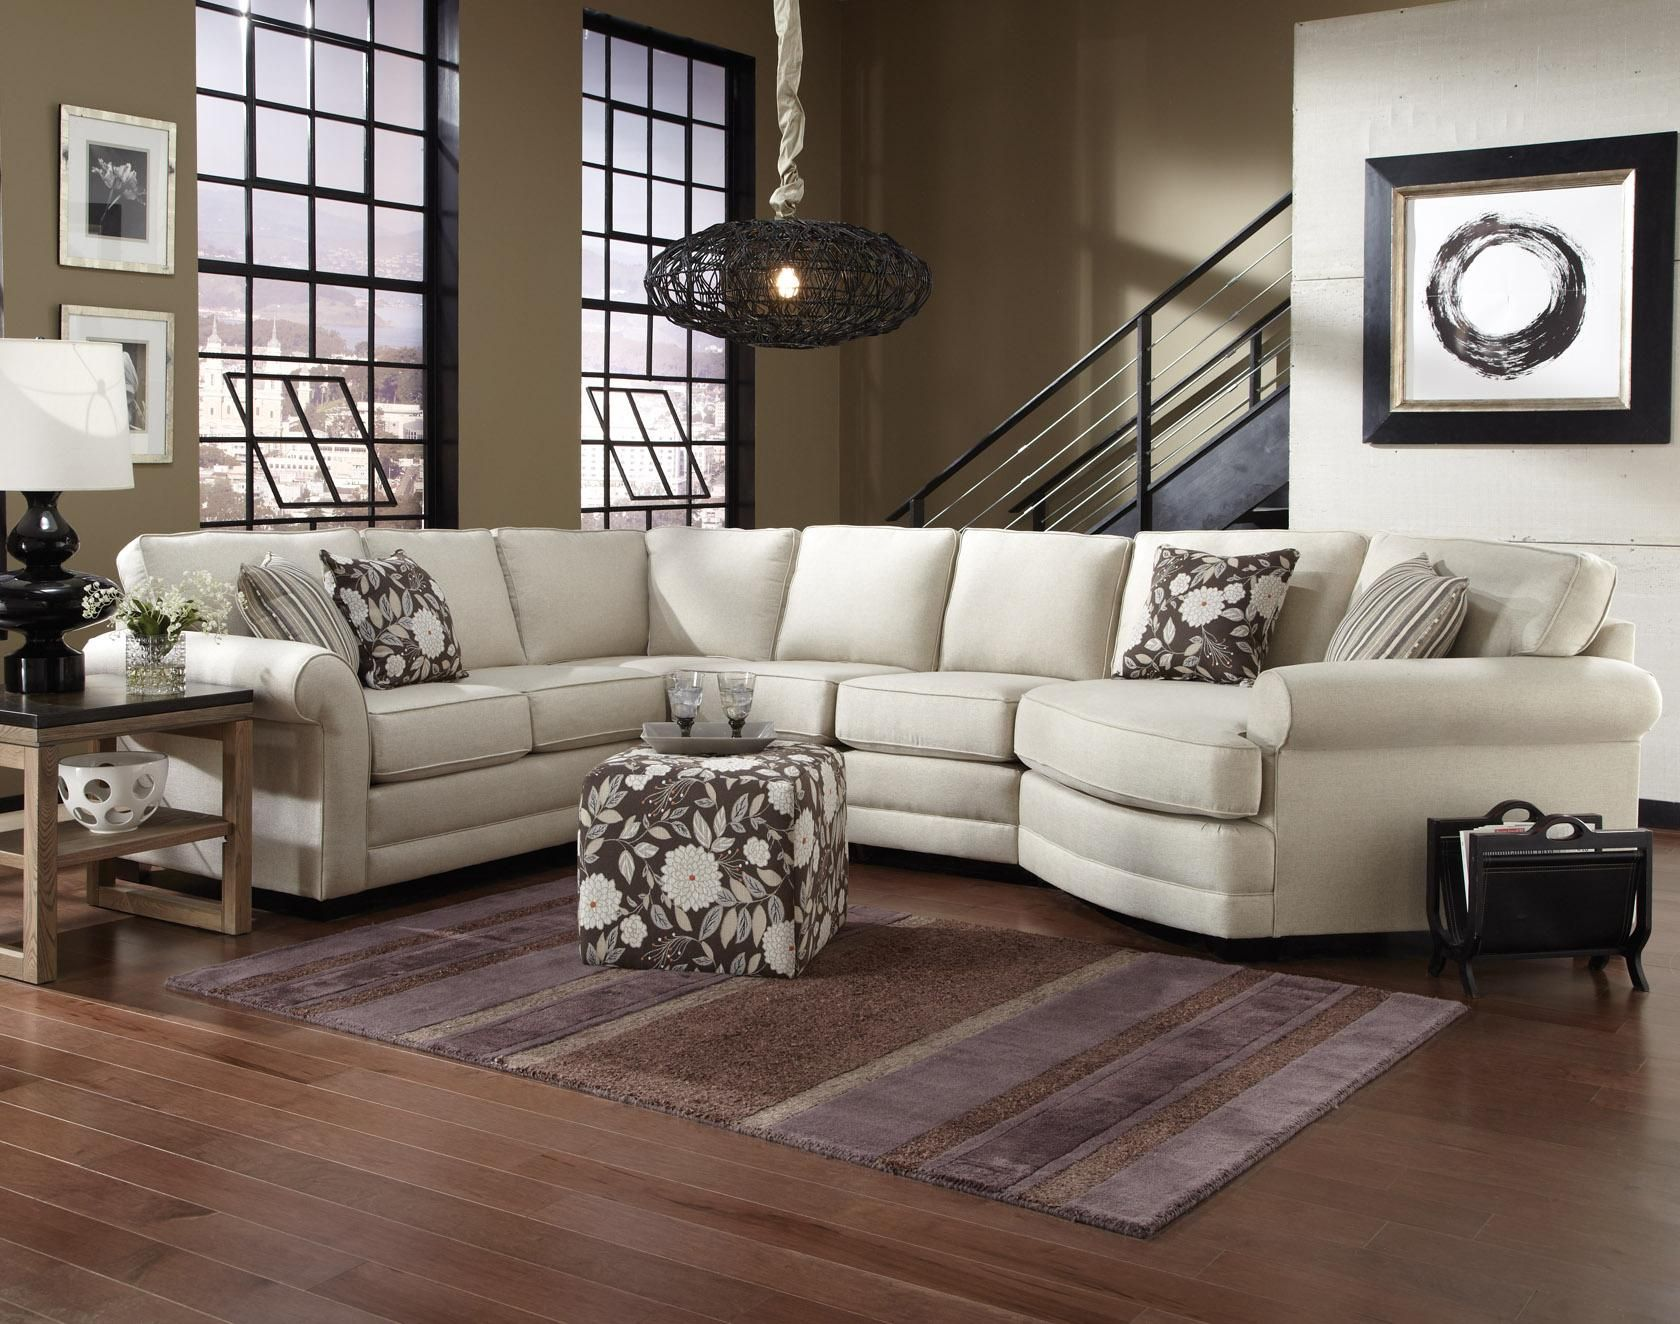 Brantley 5 Seat Sectional Sofa With Cuddler By England